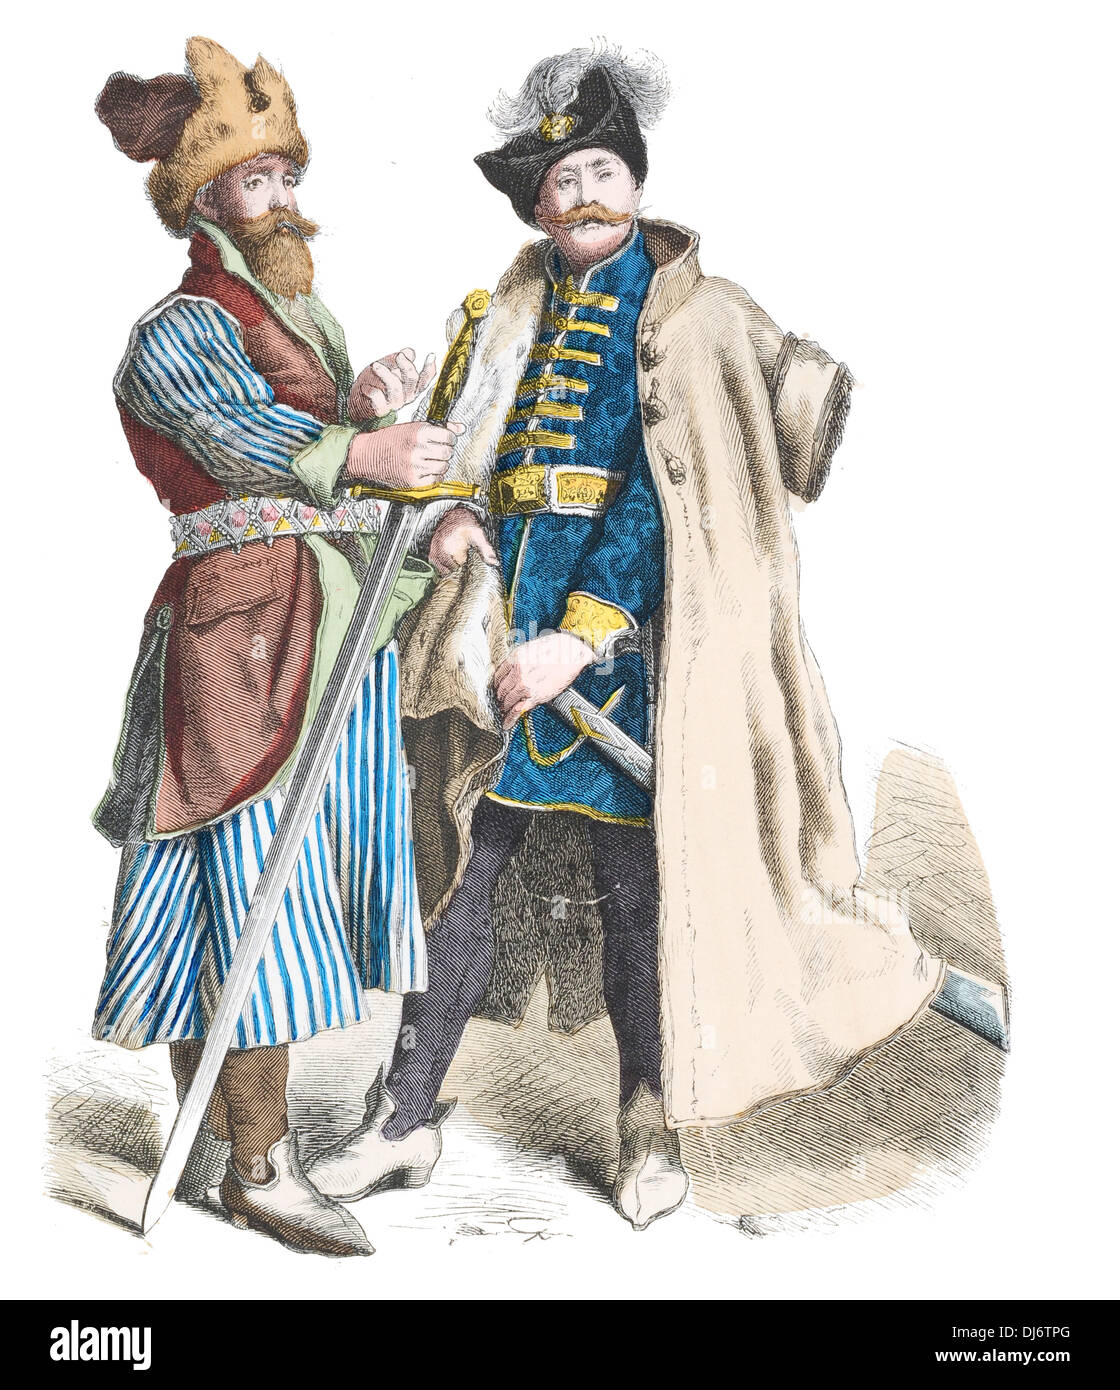 16th Century Polish Nobleman and Bornehmer Russian soldier - Stock Image